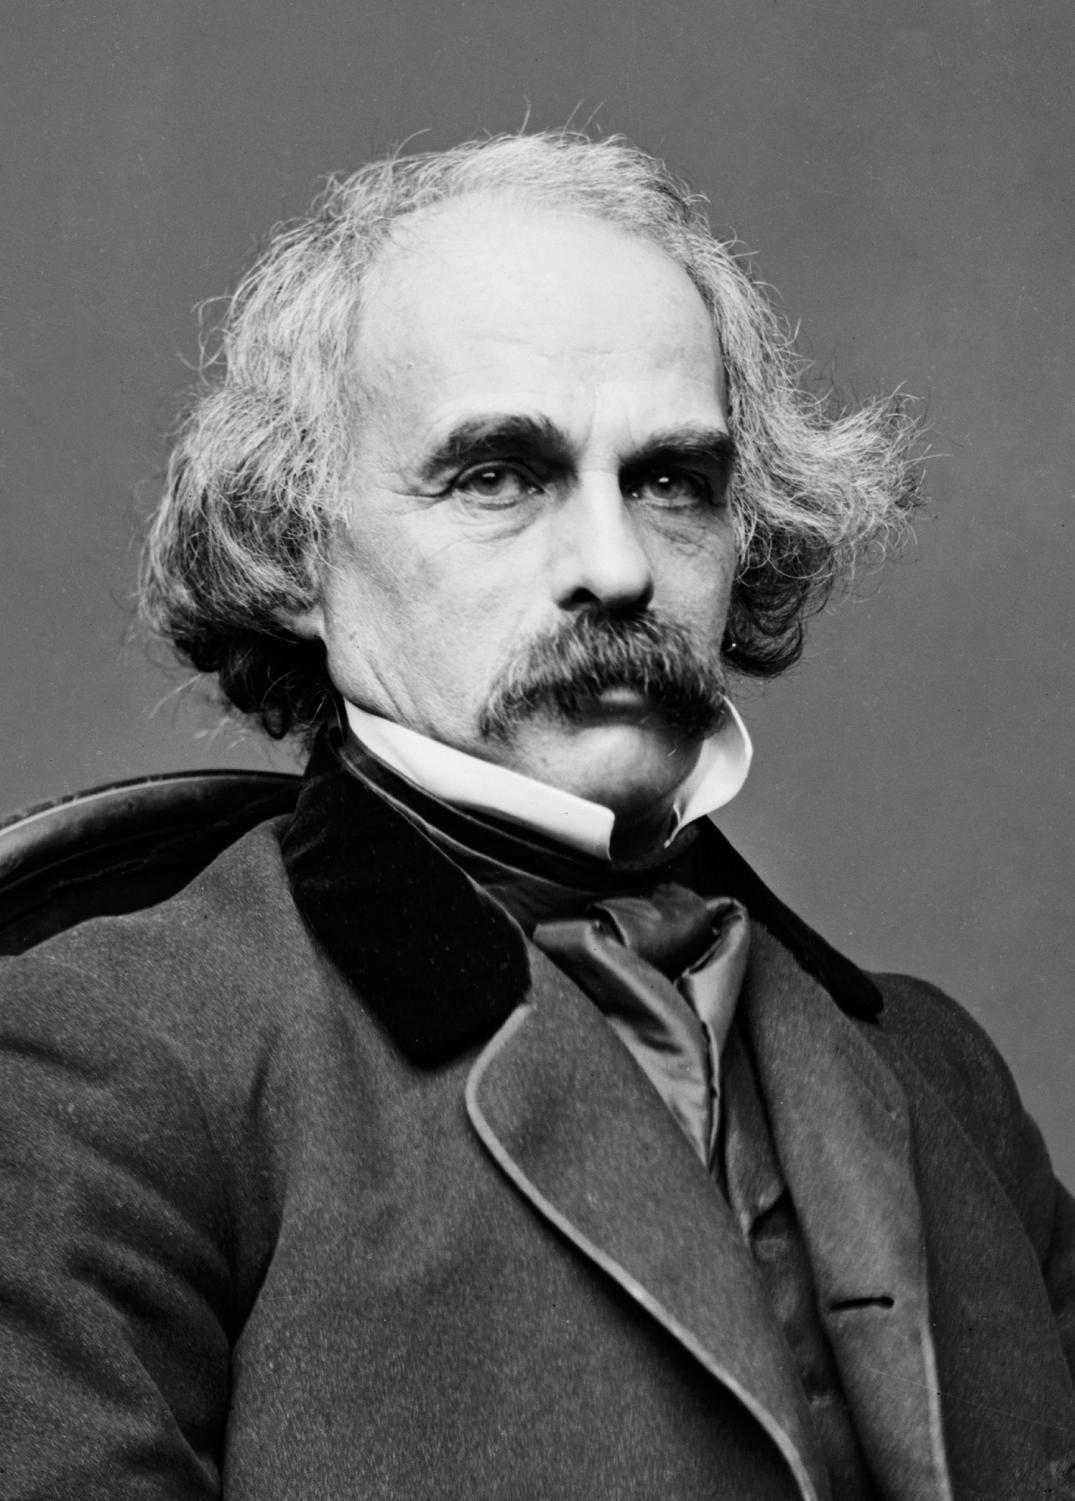 Nathaniel Hawthorne, (born July 4, 1804, Salem, Massachusetts, U.S.—died May 19, 1864, Plymouth, New Hampshire), American novelist and short-story writer who was a master of the allegorical and symbolic tale